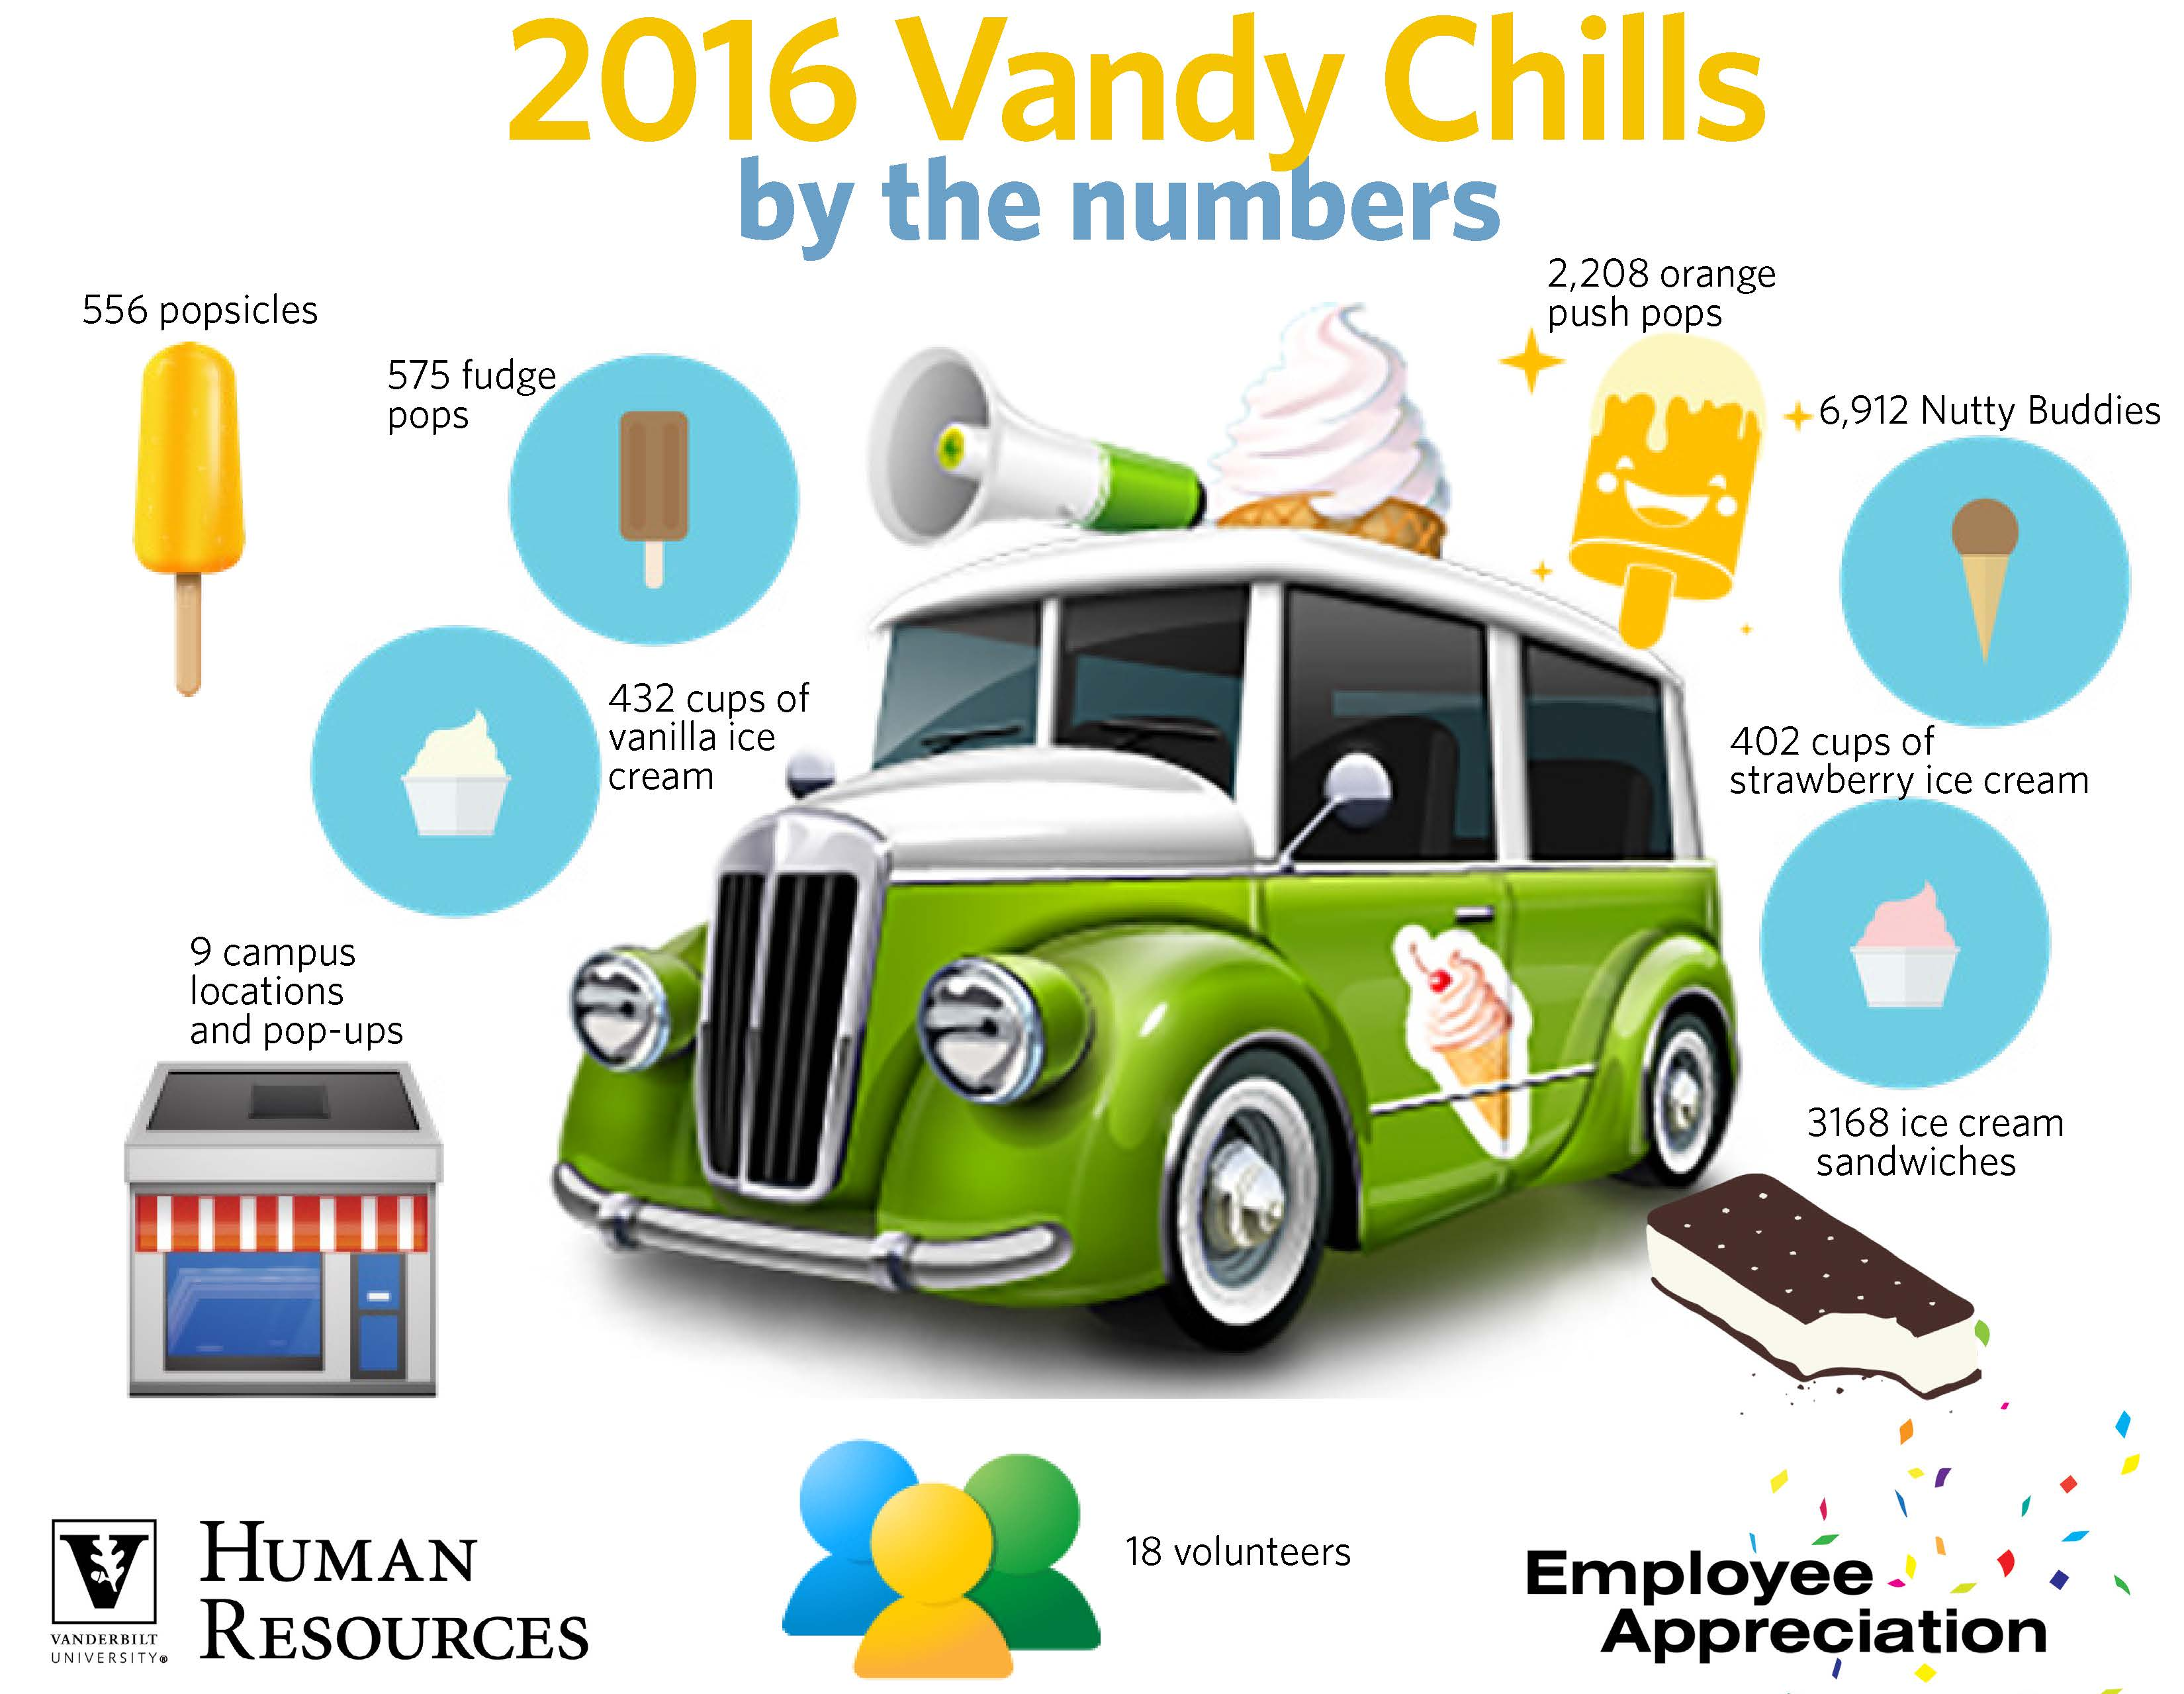 2016 Vandy Chills by the numbers